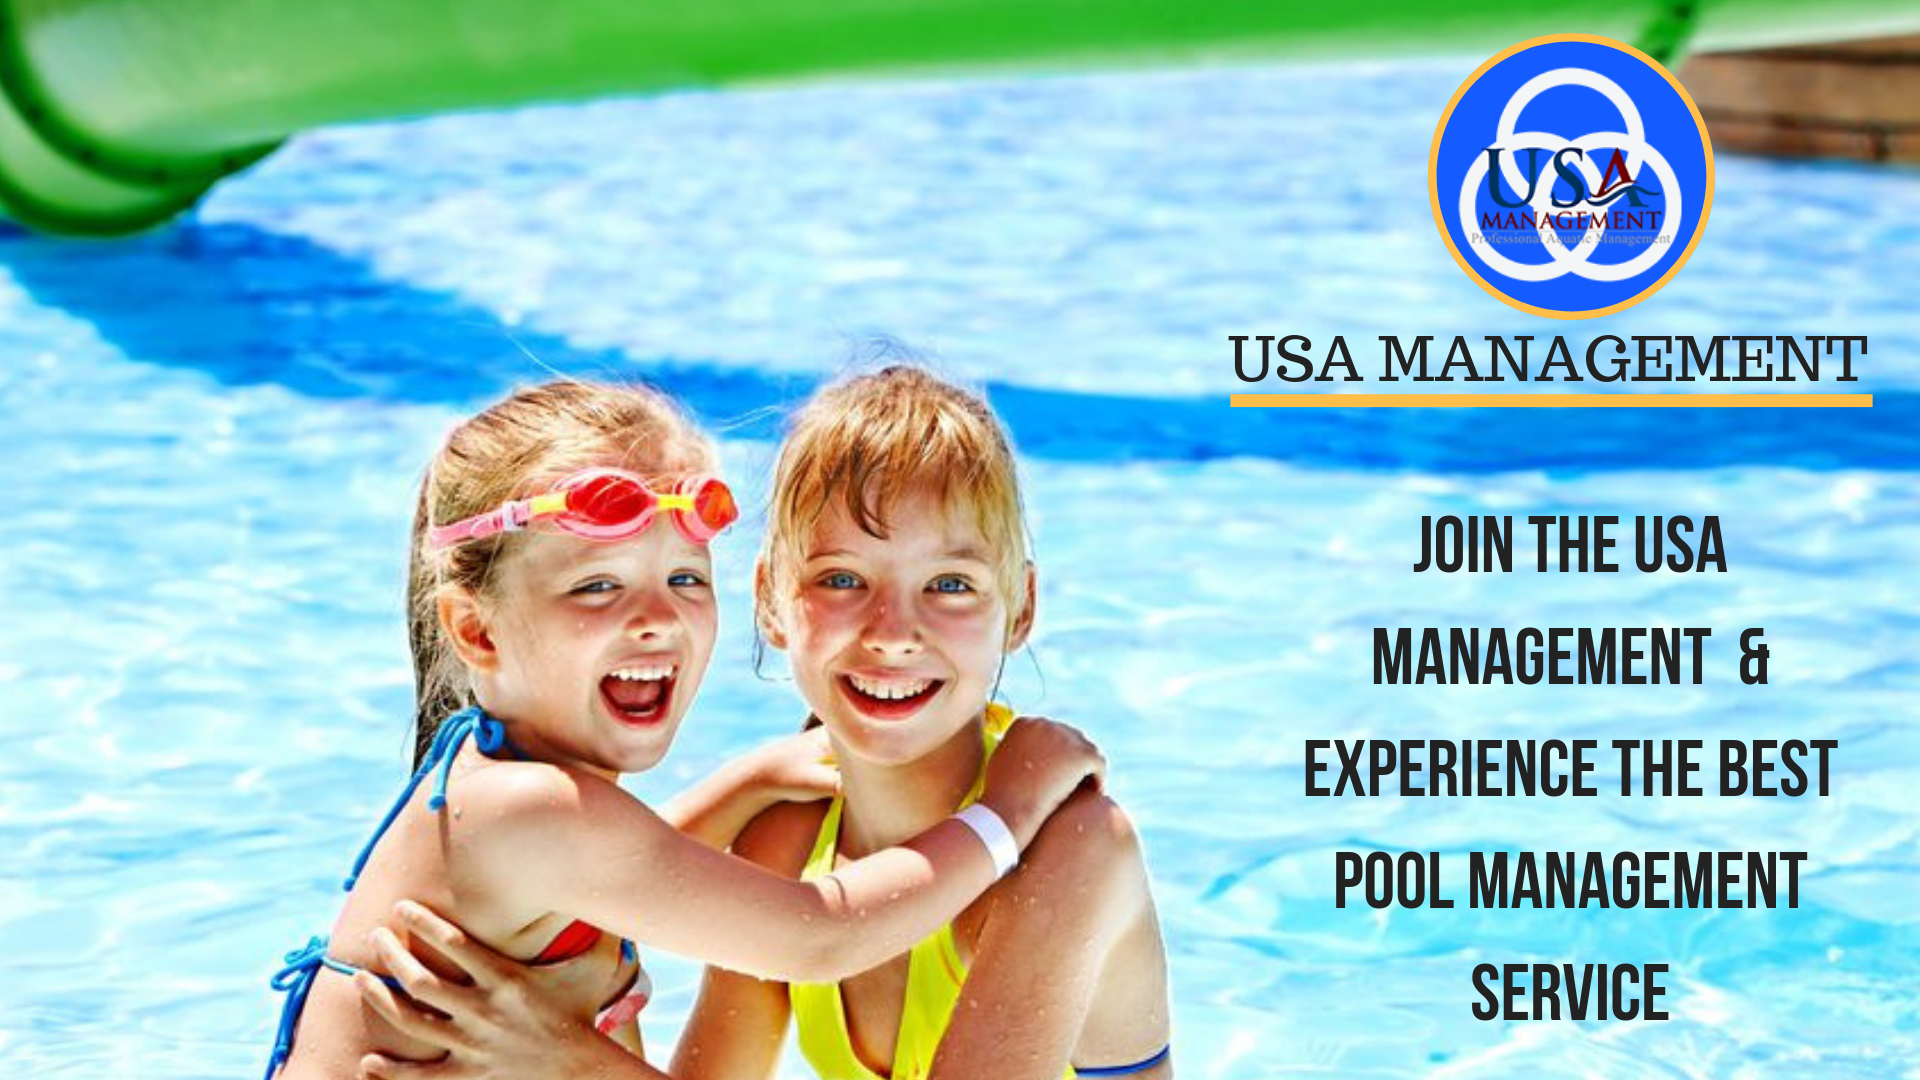 Usa Management Experience The Best Pool Management Service Are You Searching For The Best Pool Swimming Pool Construction Pool Companies Cool Swimming Pools